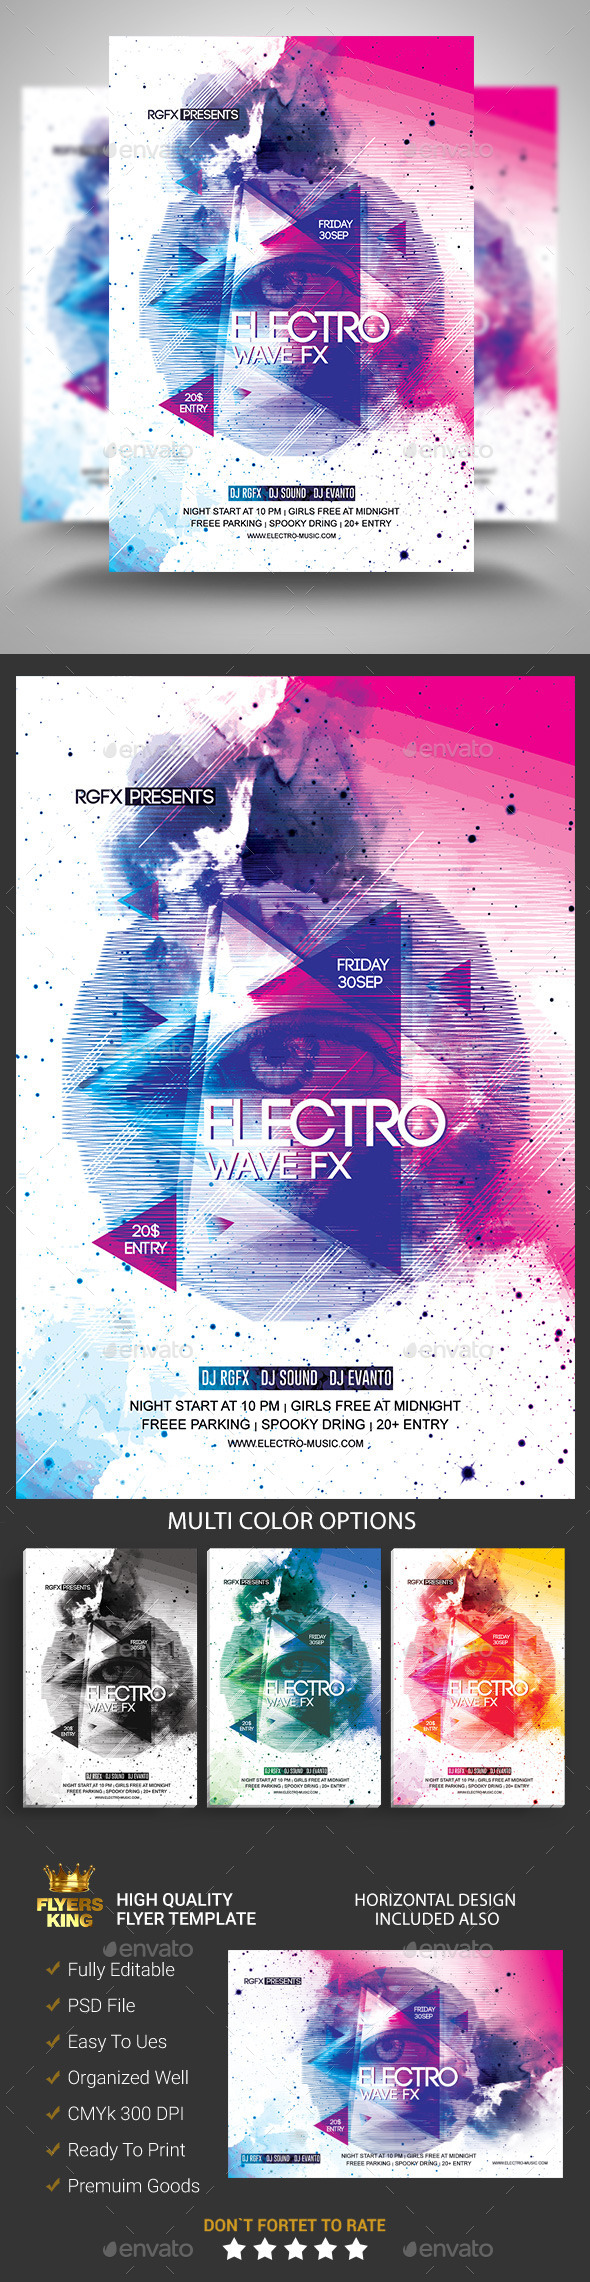 GraphicRiver Electro Wave Fx Party Flyer 11476161